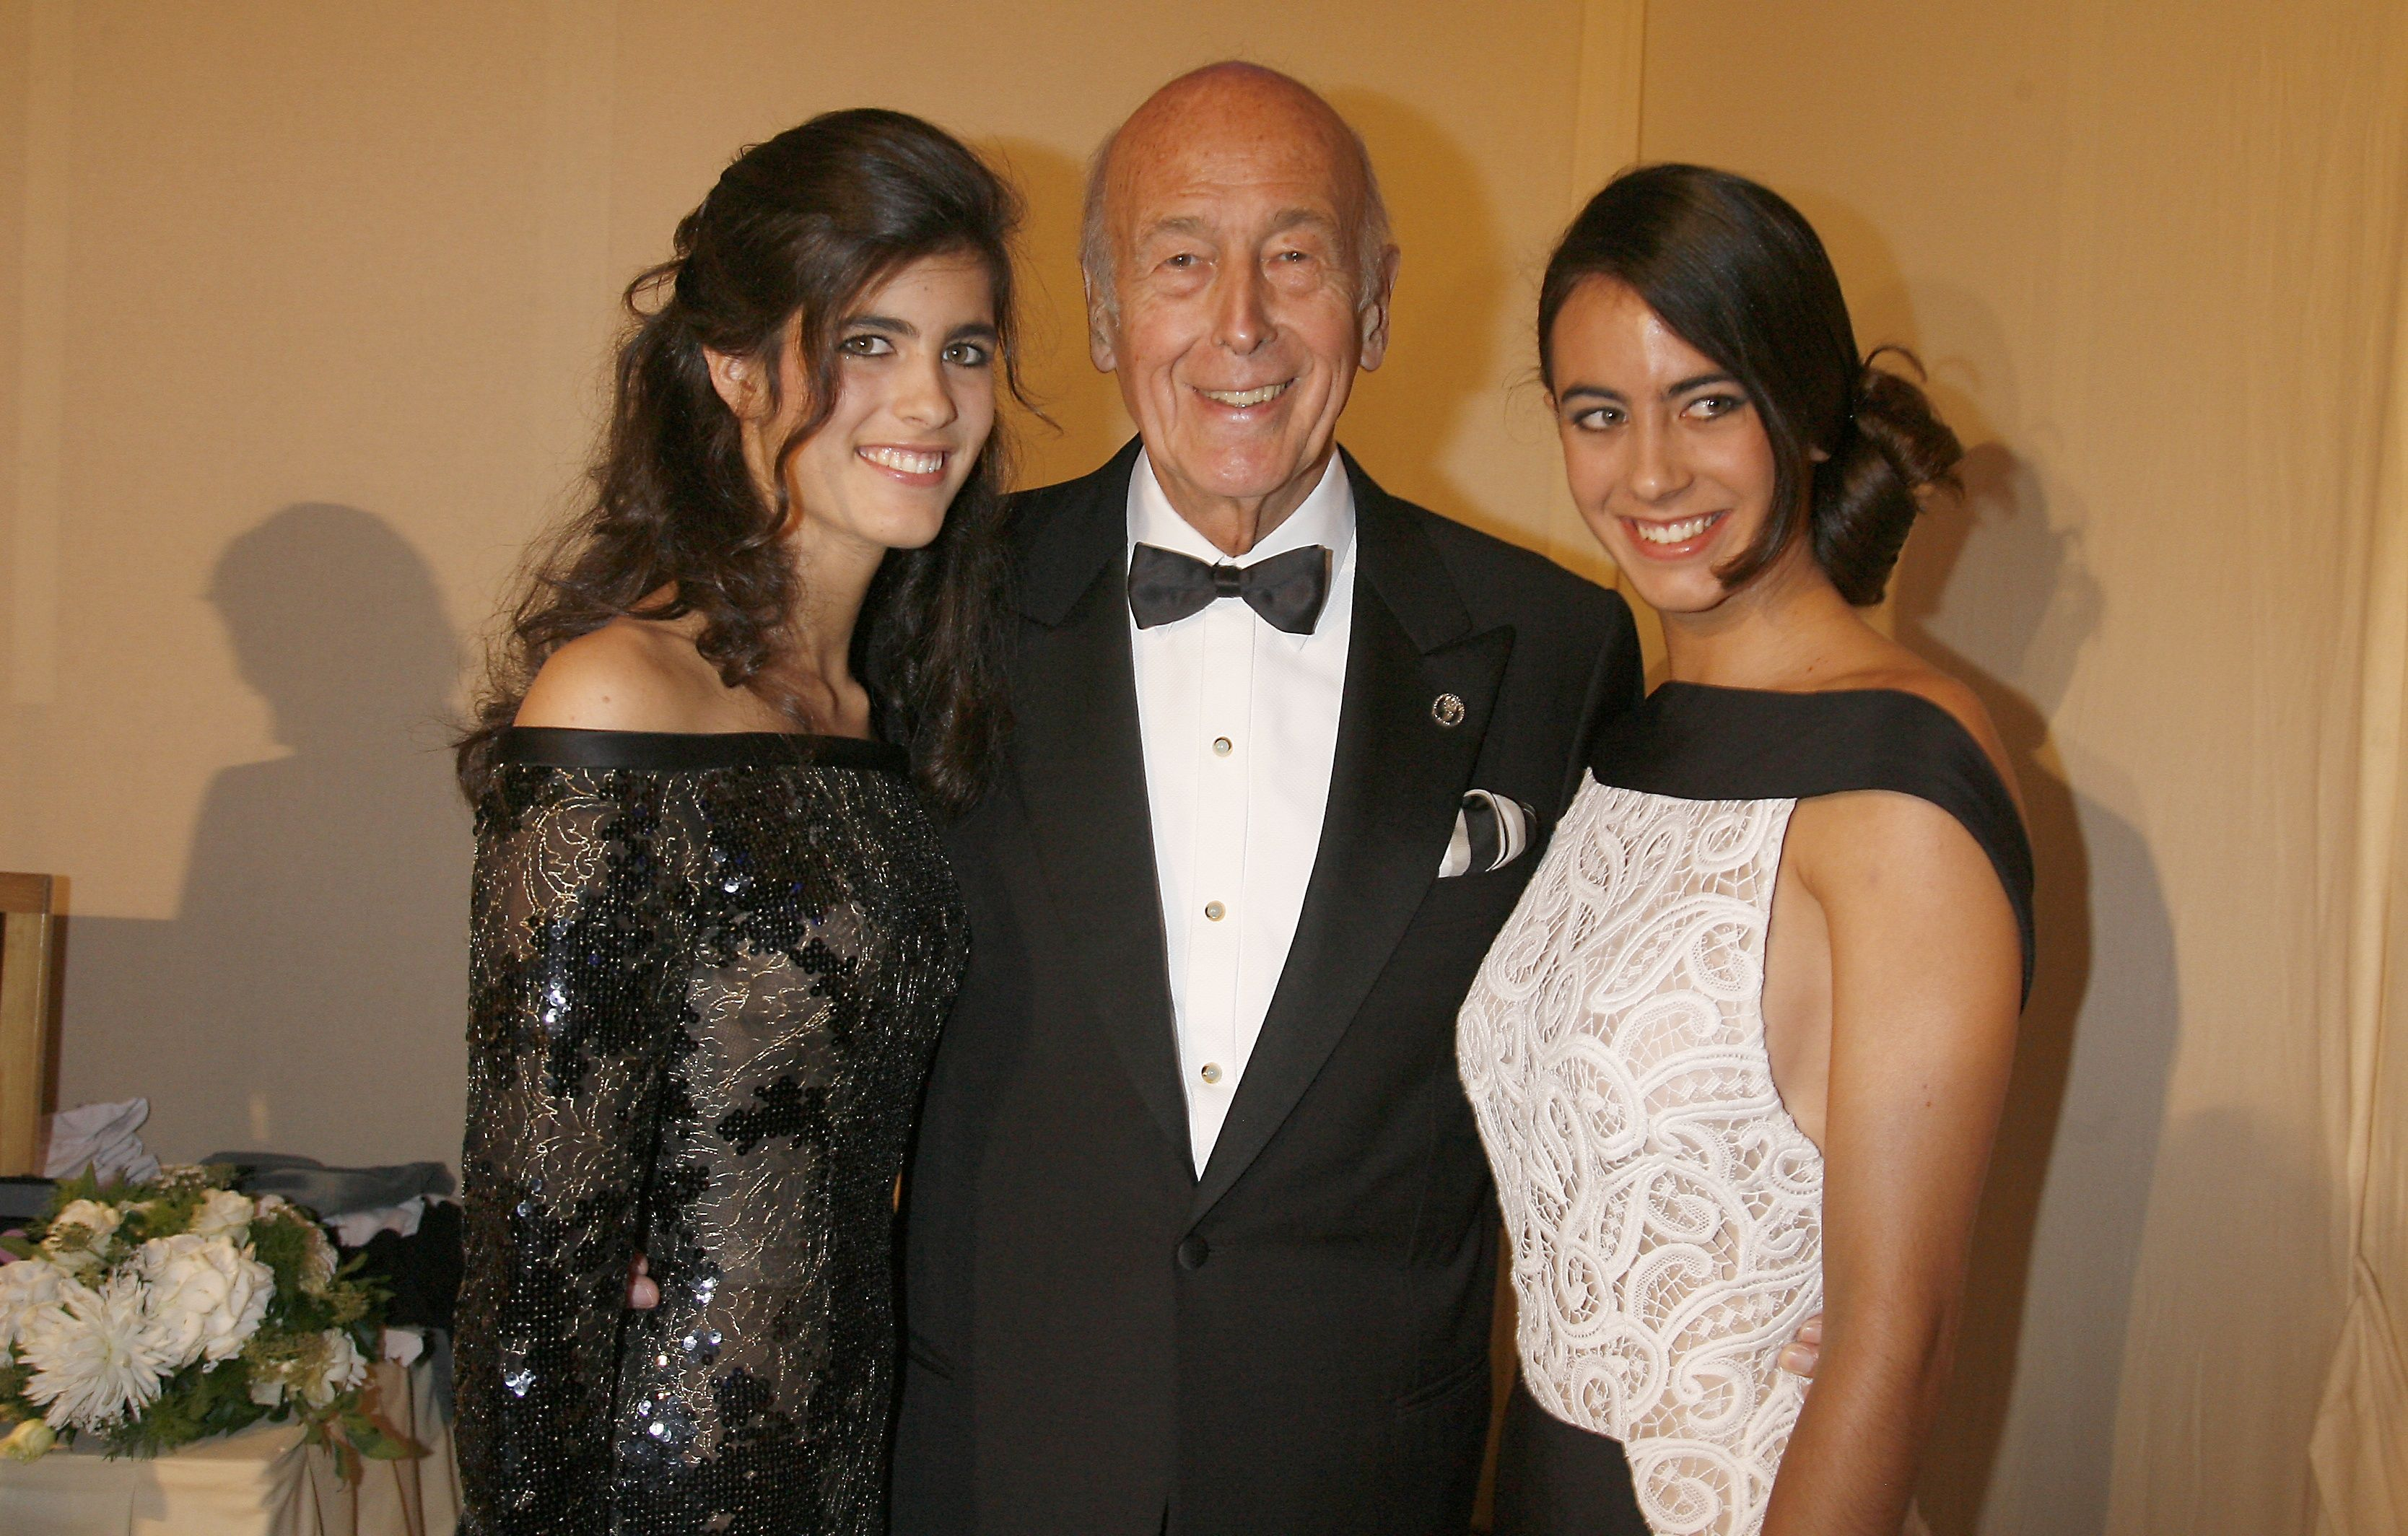 Valéry Giscard d'Estaing et ses filles à Versailles, France, le 7 octobre 2007. | Photo : Getty Images